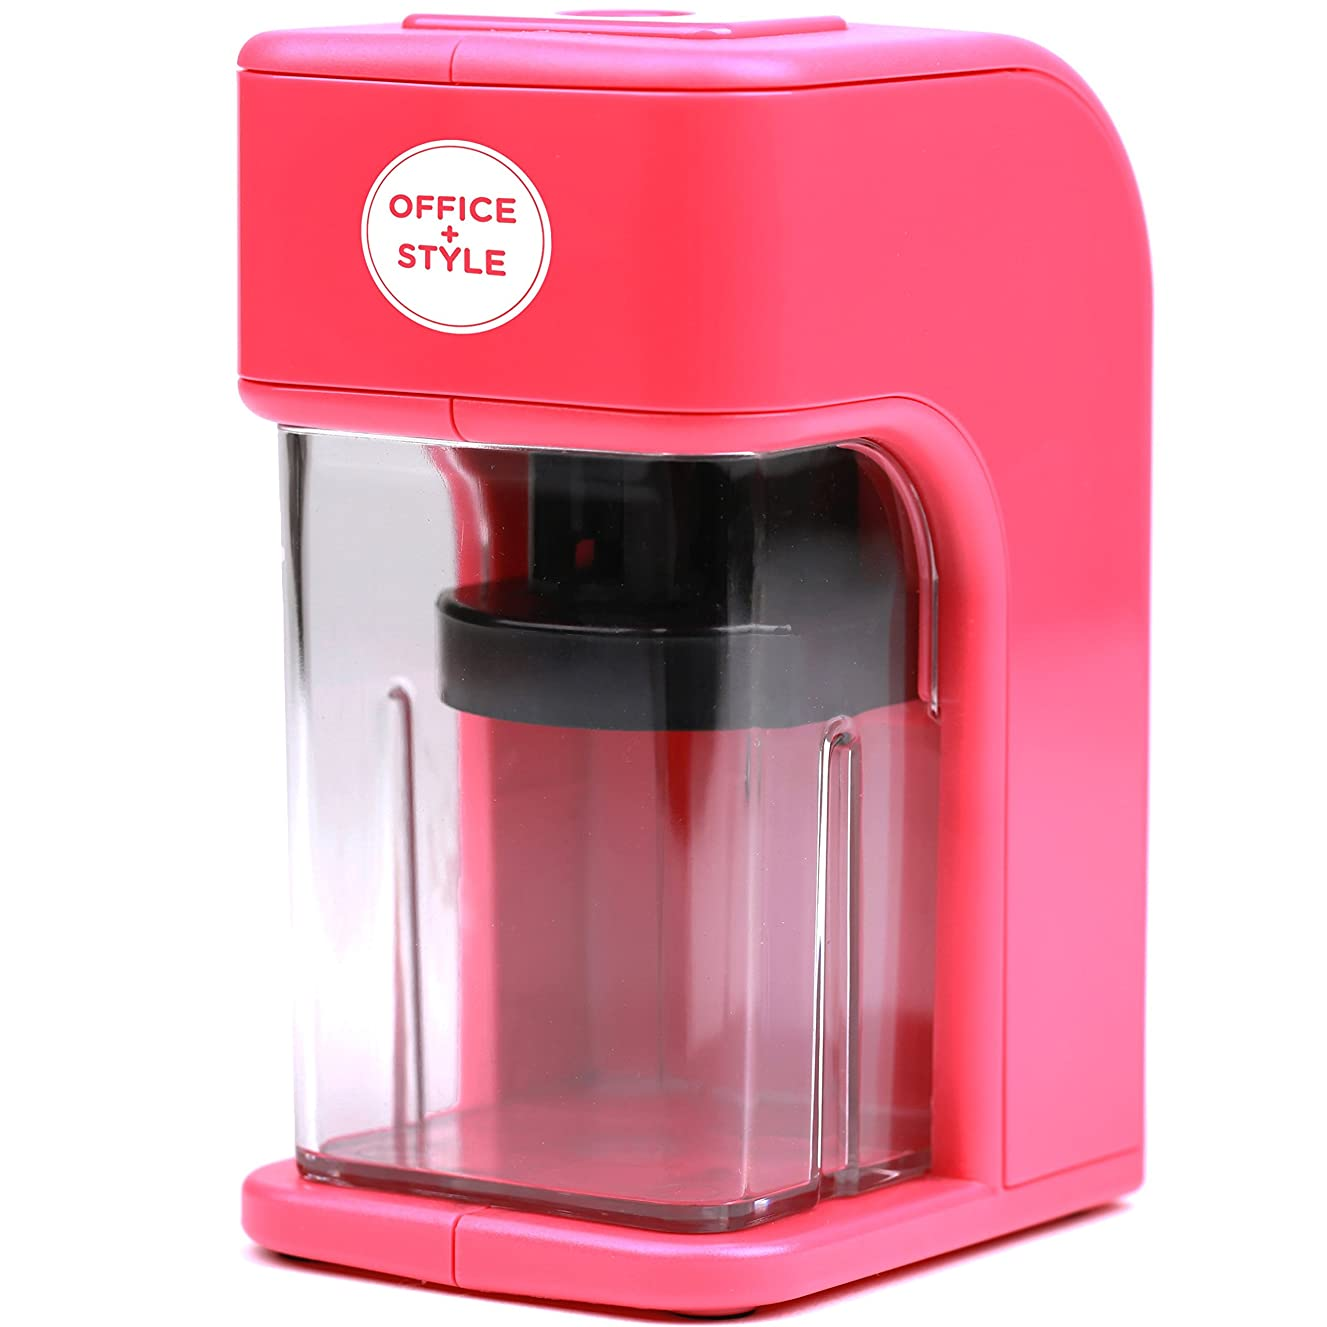 Electronic Pencil Sharpener With Auto Stop Safety Feature & Large Pencil Holder For Home, Office or Classroom - Pink - By Office + Style